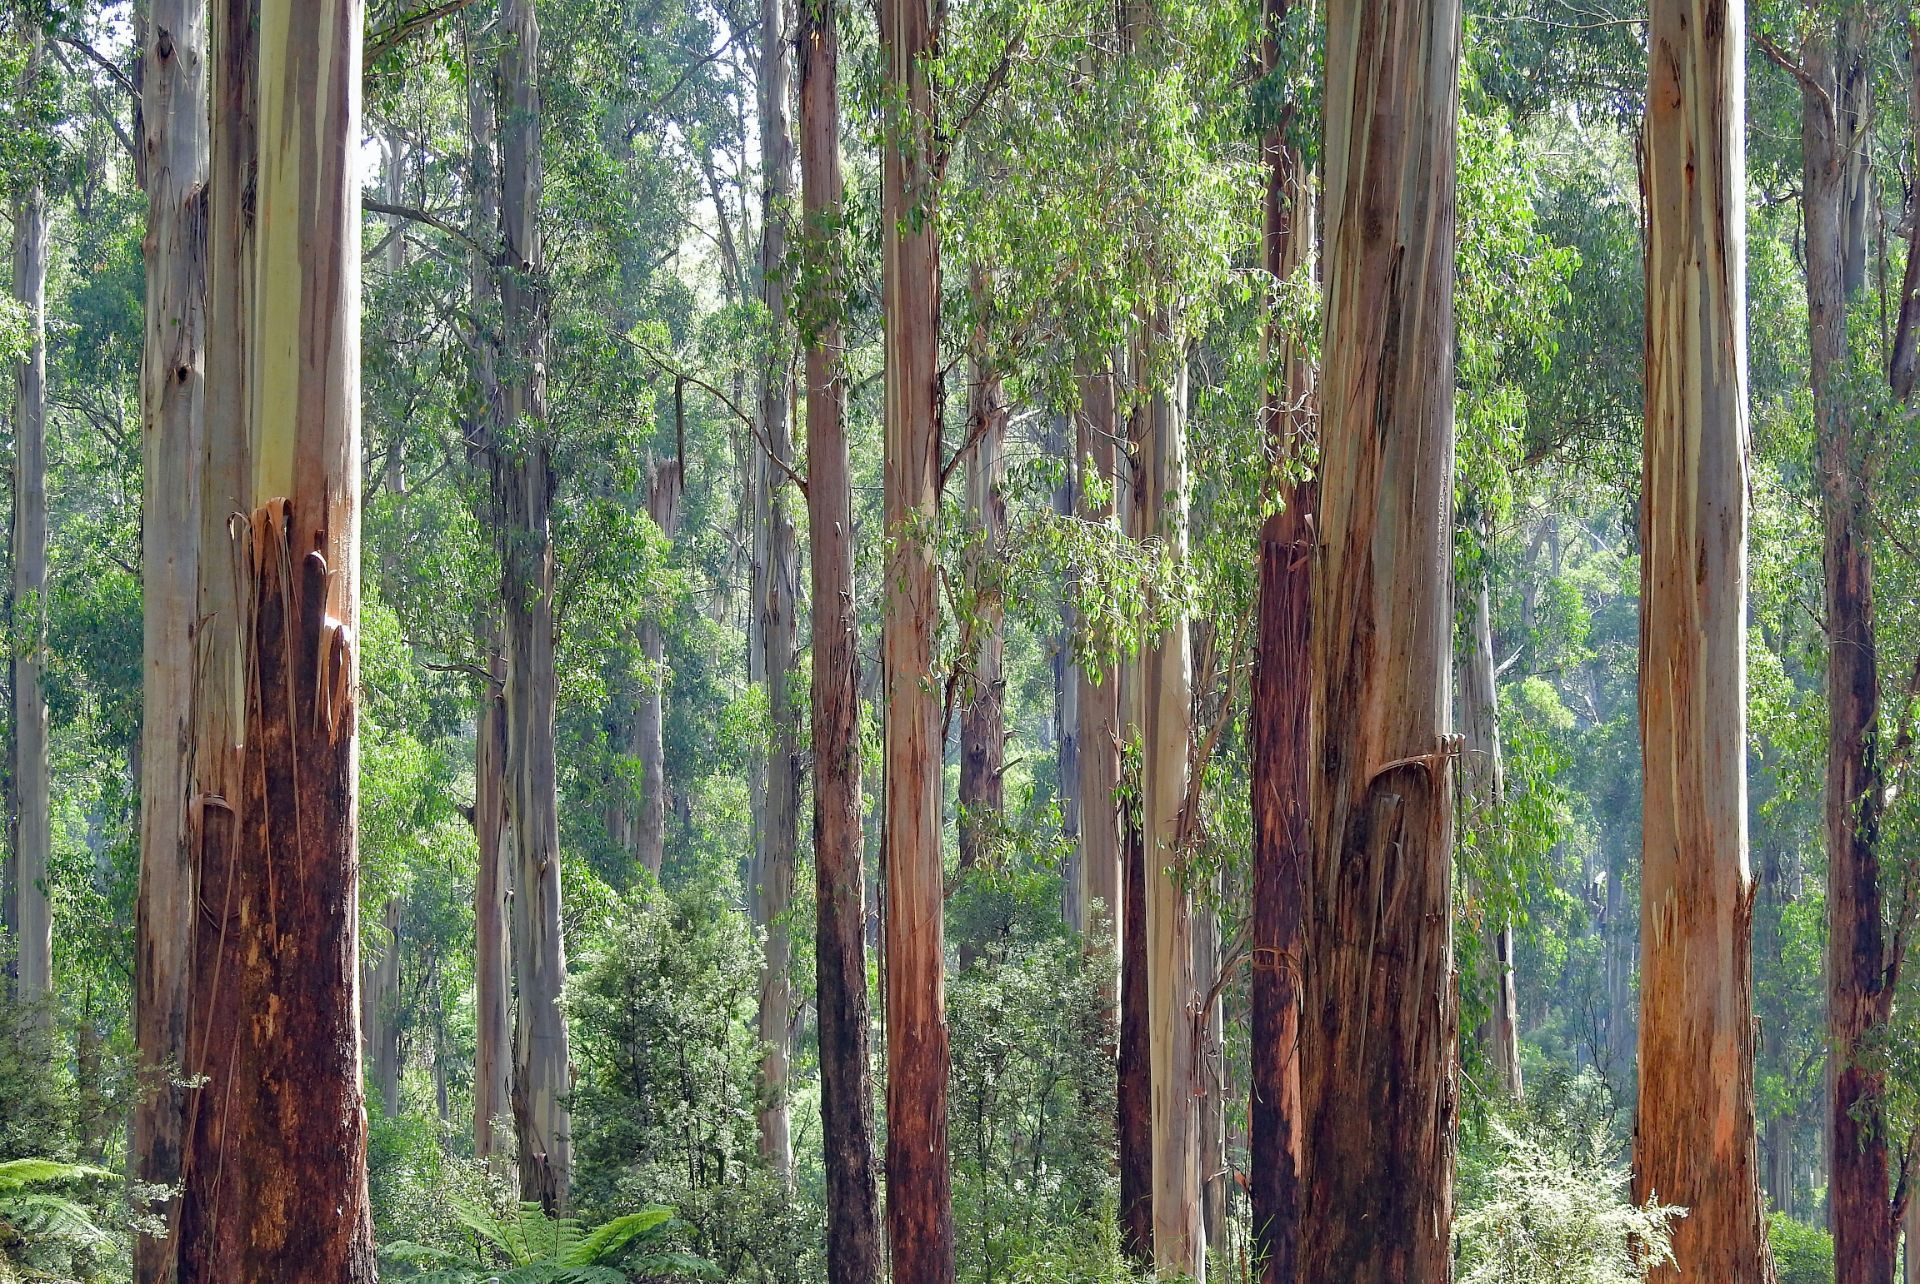 10 Dead and Critical Factors Behind Why We Need Native Species in Agroforestry